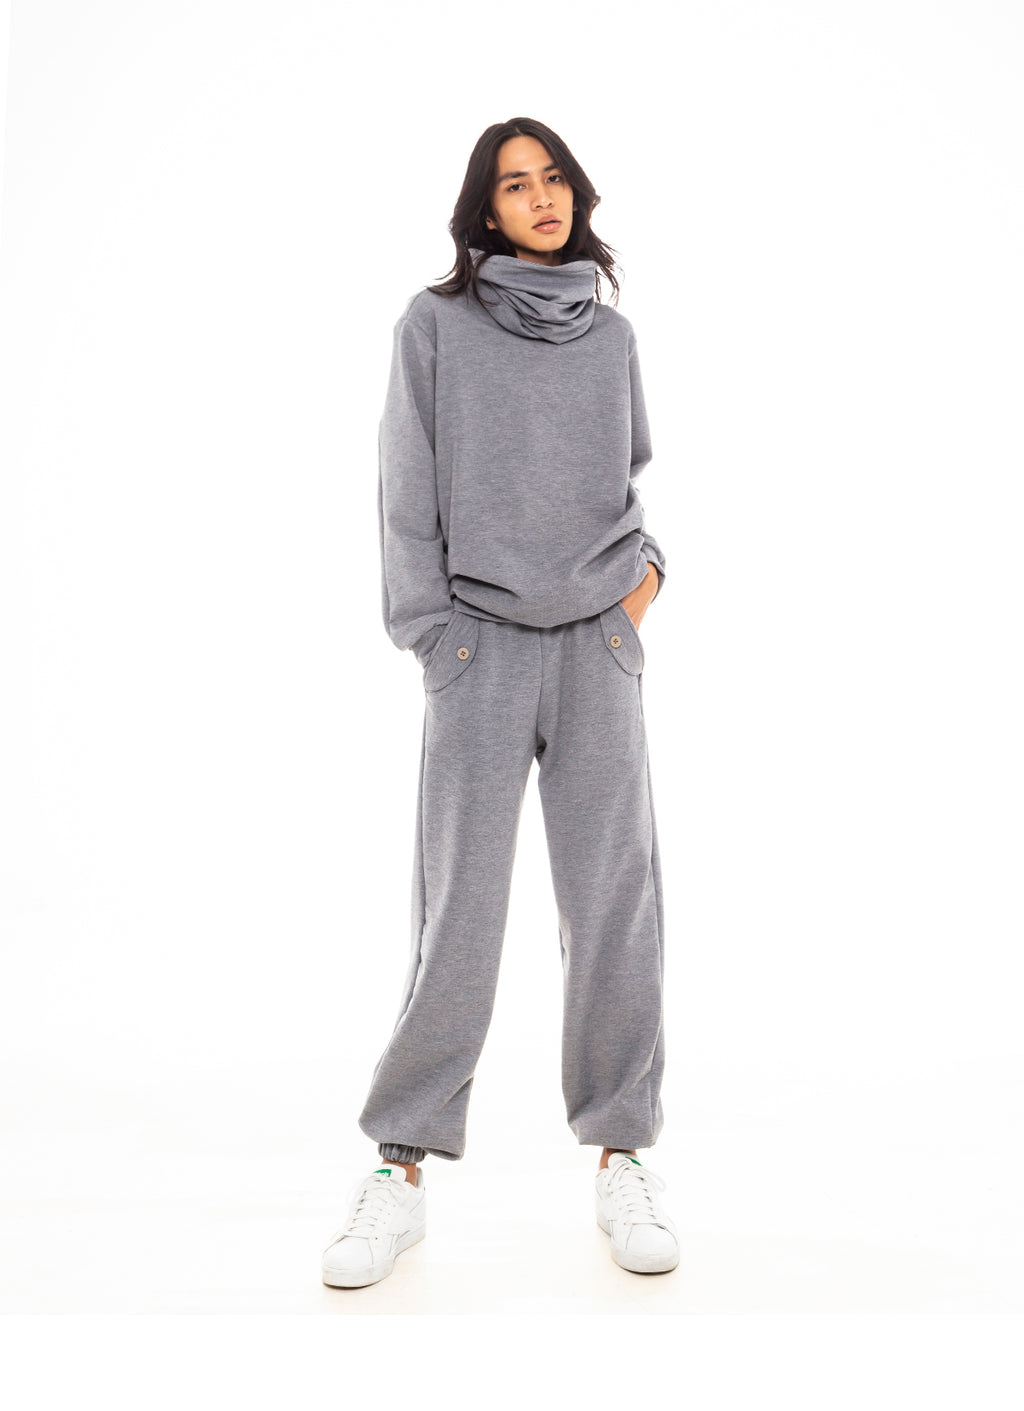 Yosemite Sweatpants